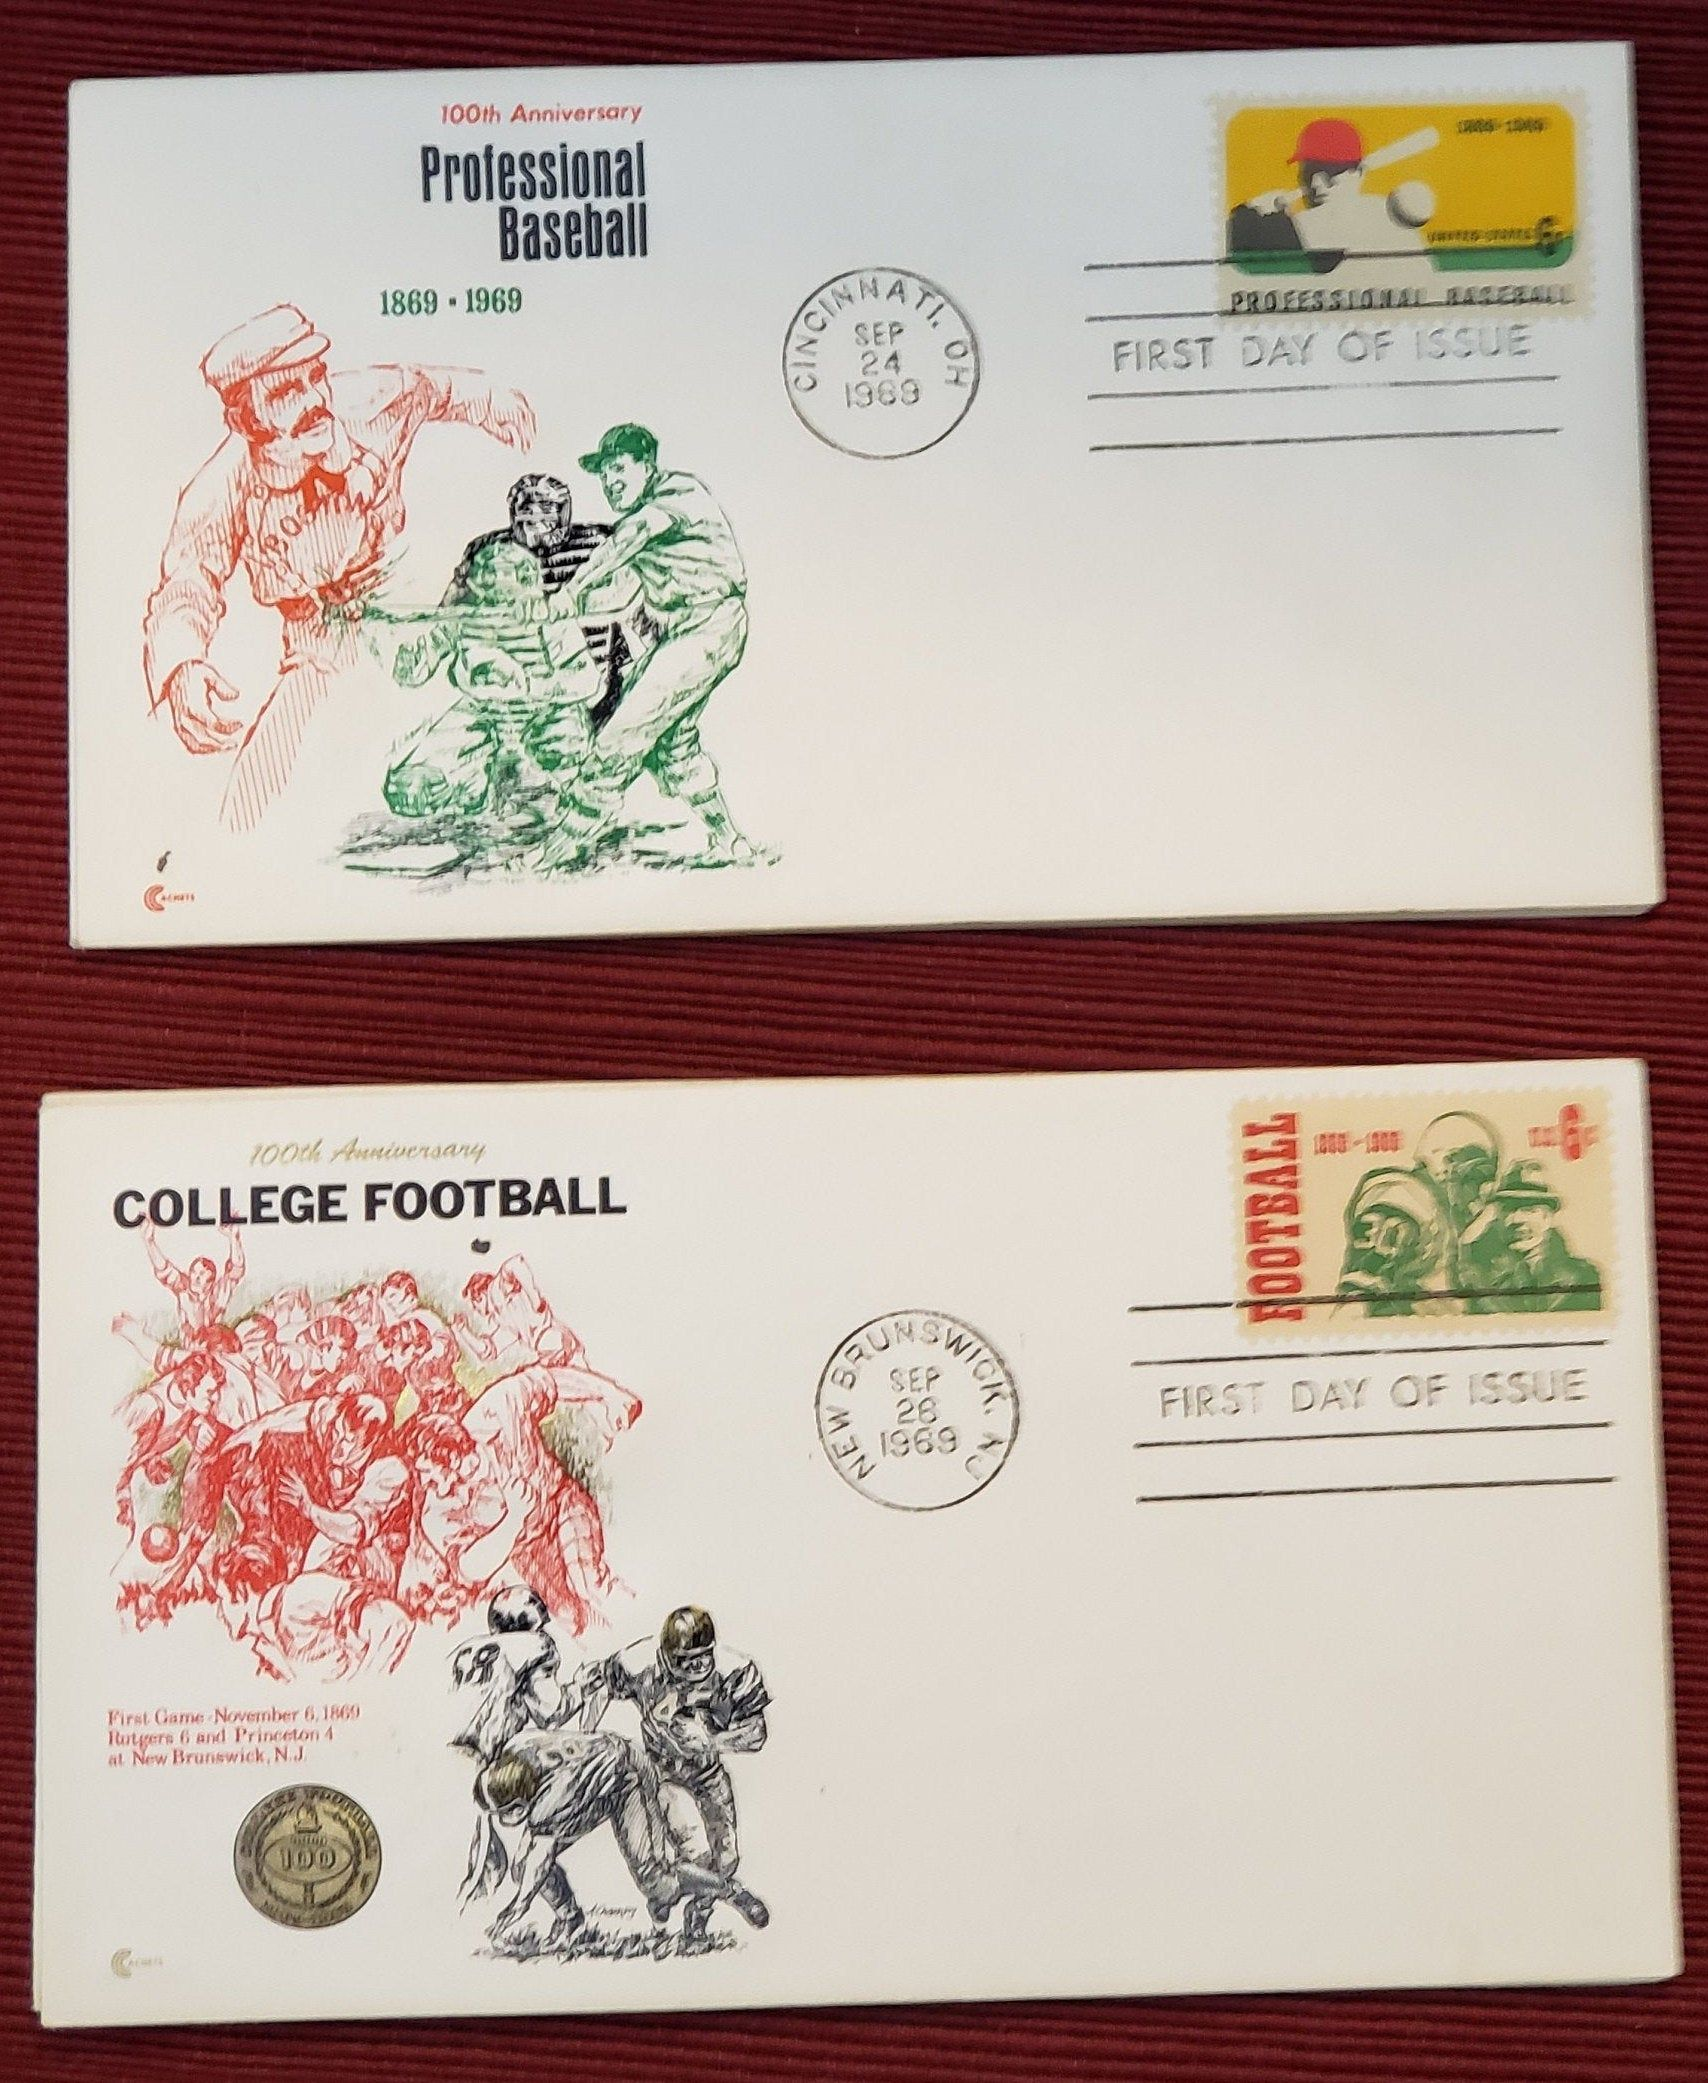 Vintage First Day Of Issue Postage Stamps Professional Etsy In 2020 Game Day Quotes College Football Professional Baseball